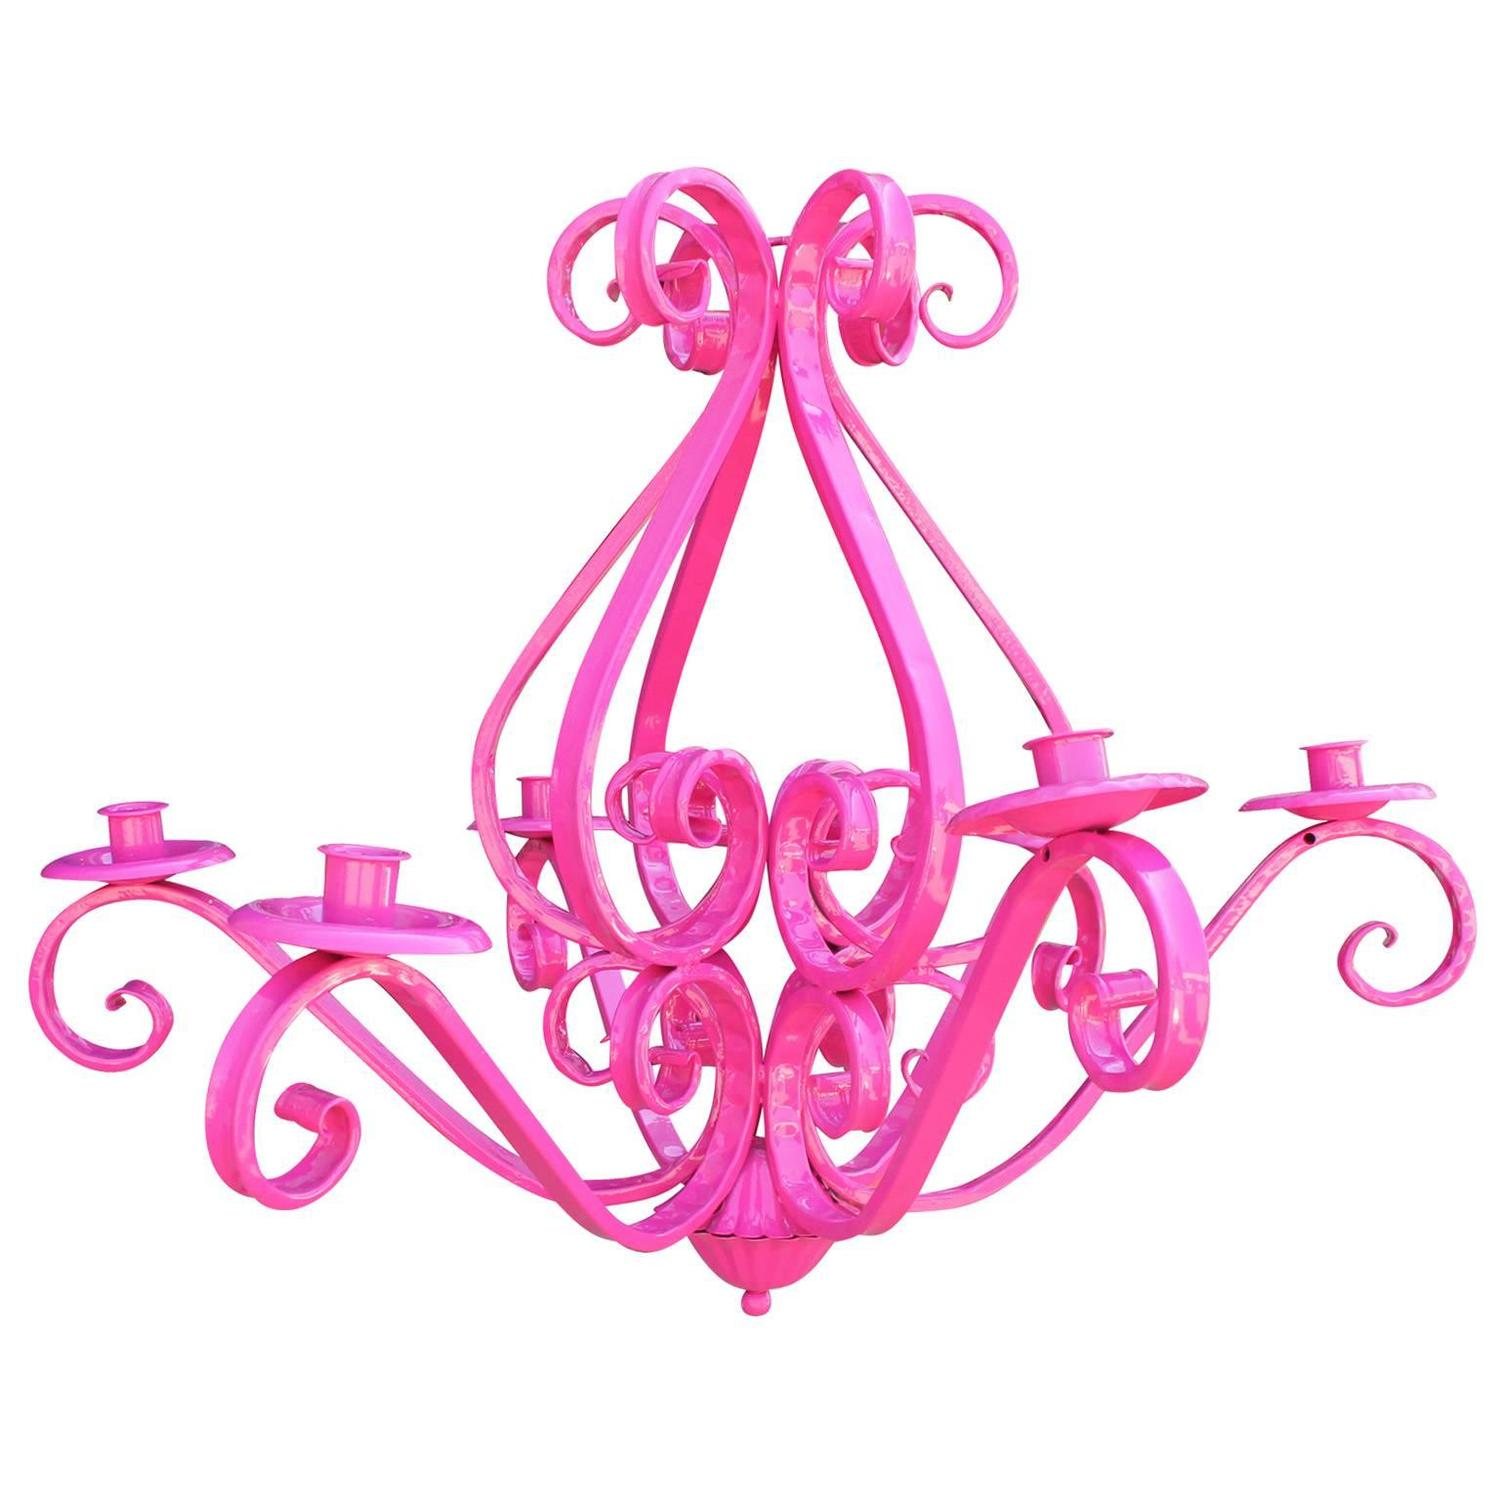 Charming Hot Pink Cast Iron Chandelier Light Fixture For